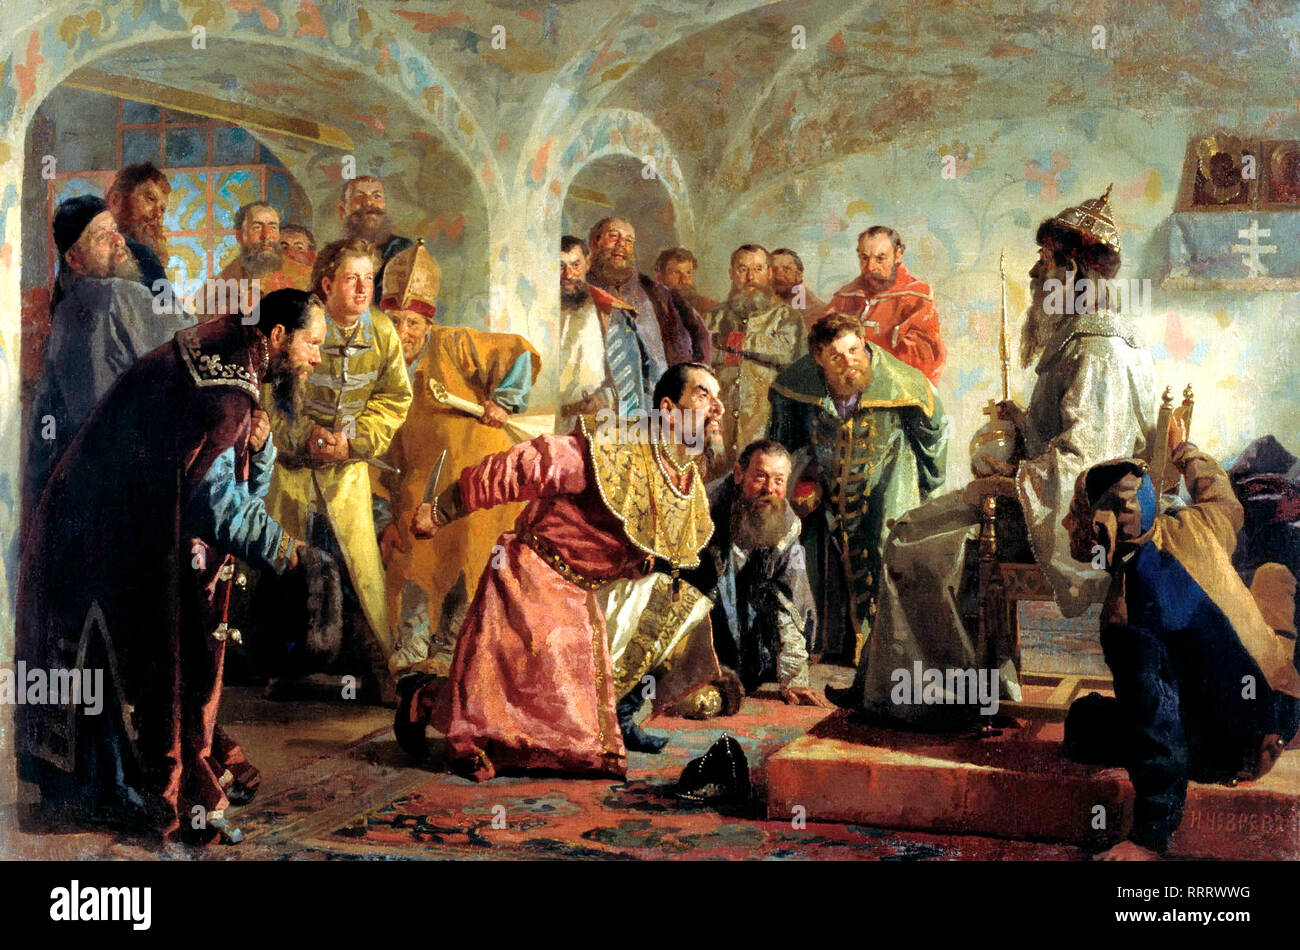 The Oprichniki by Nikolai Nevrev. The painting shows the last minutes of boyarin Feodorov, arrested for treason. To mock his alleged ambitions on the Tsar's title, the nobleman was given Tsar's regalia before execution. - Stock Image